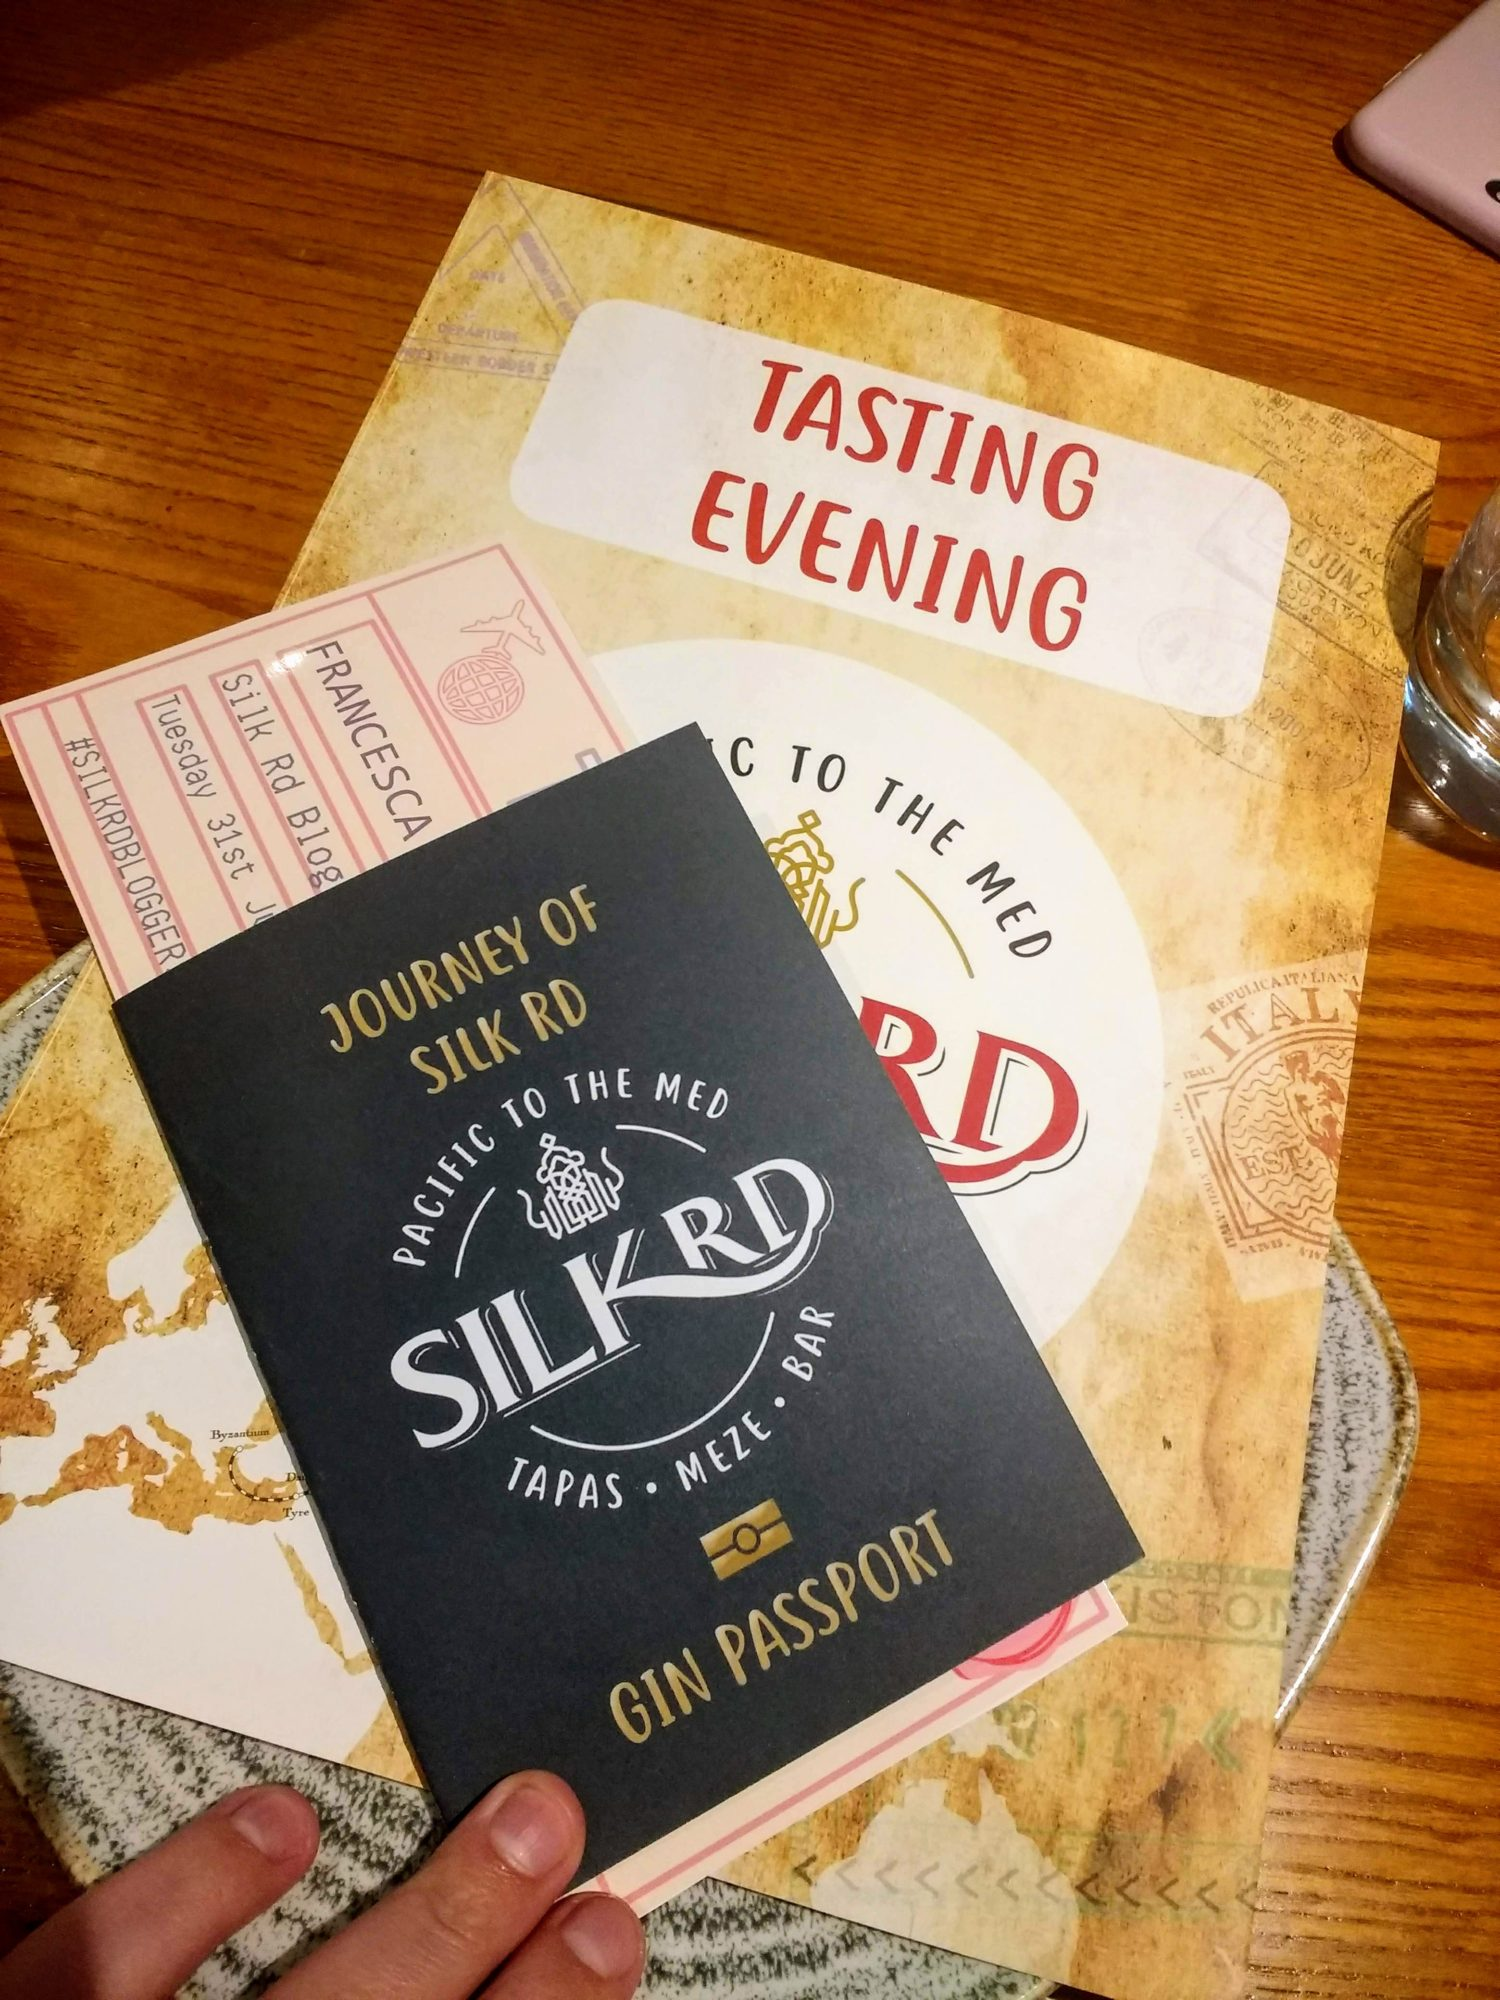 Gluten Free Tapas at Silk Rd Liverpool | Gin Passport & menu